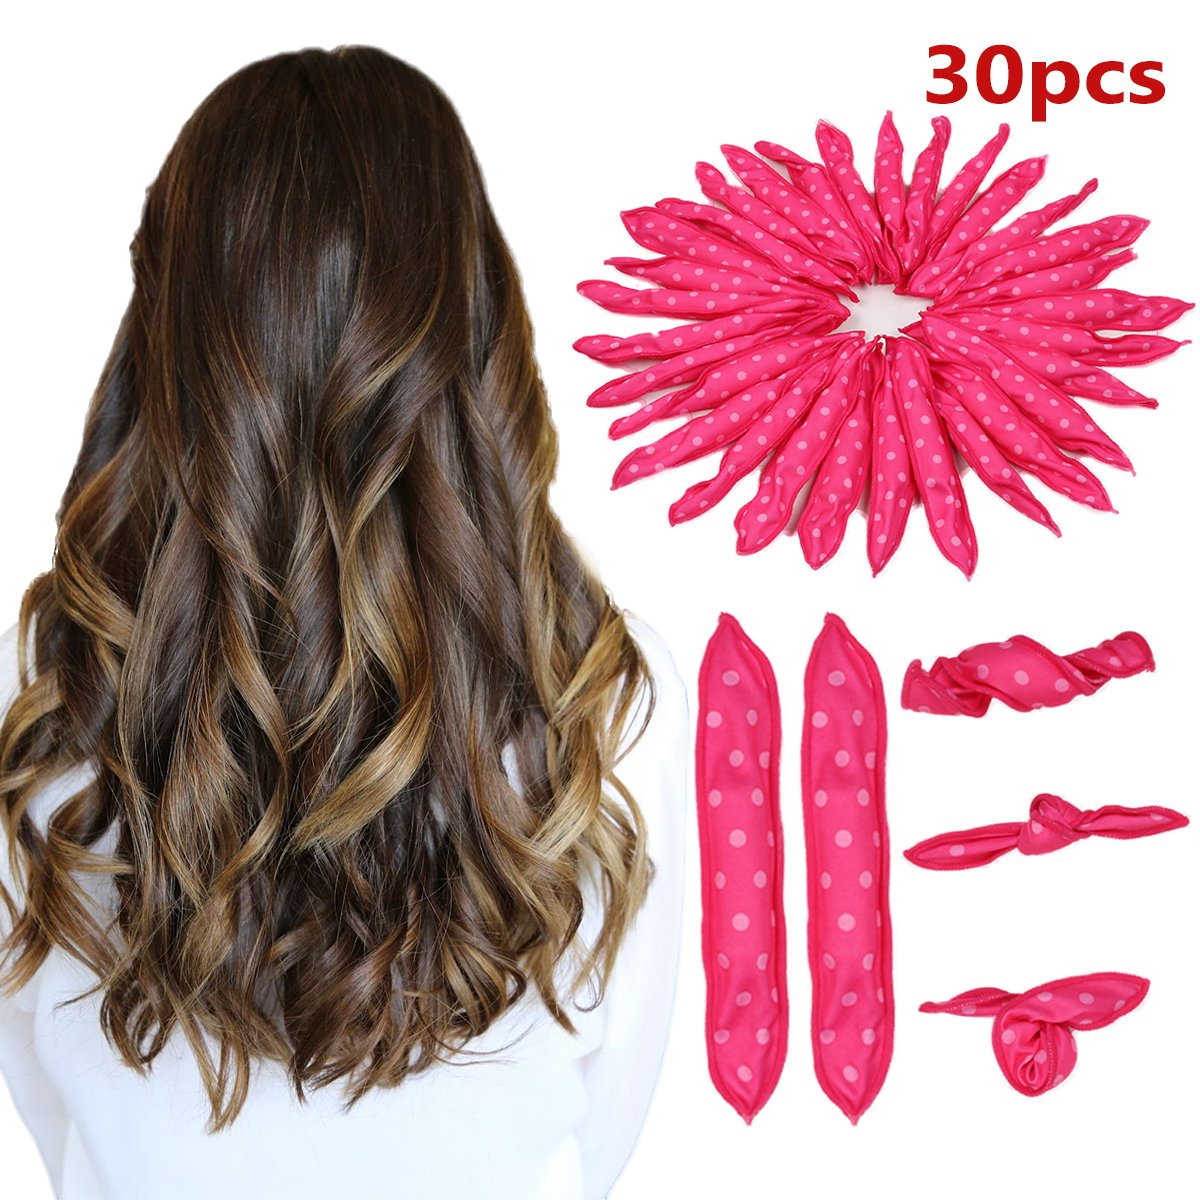 New Best Flexible Foam And Sponge Hair Curlers In The Industry Revolutionizing Old Fashion Rods Into 20 Night That Are Fy To